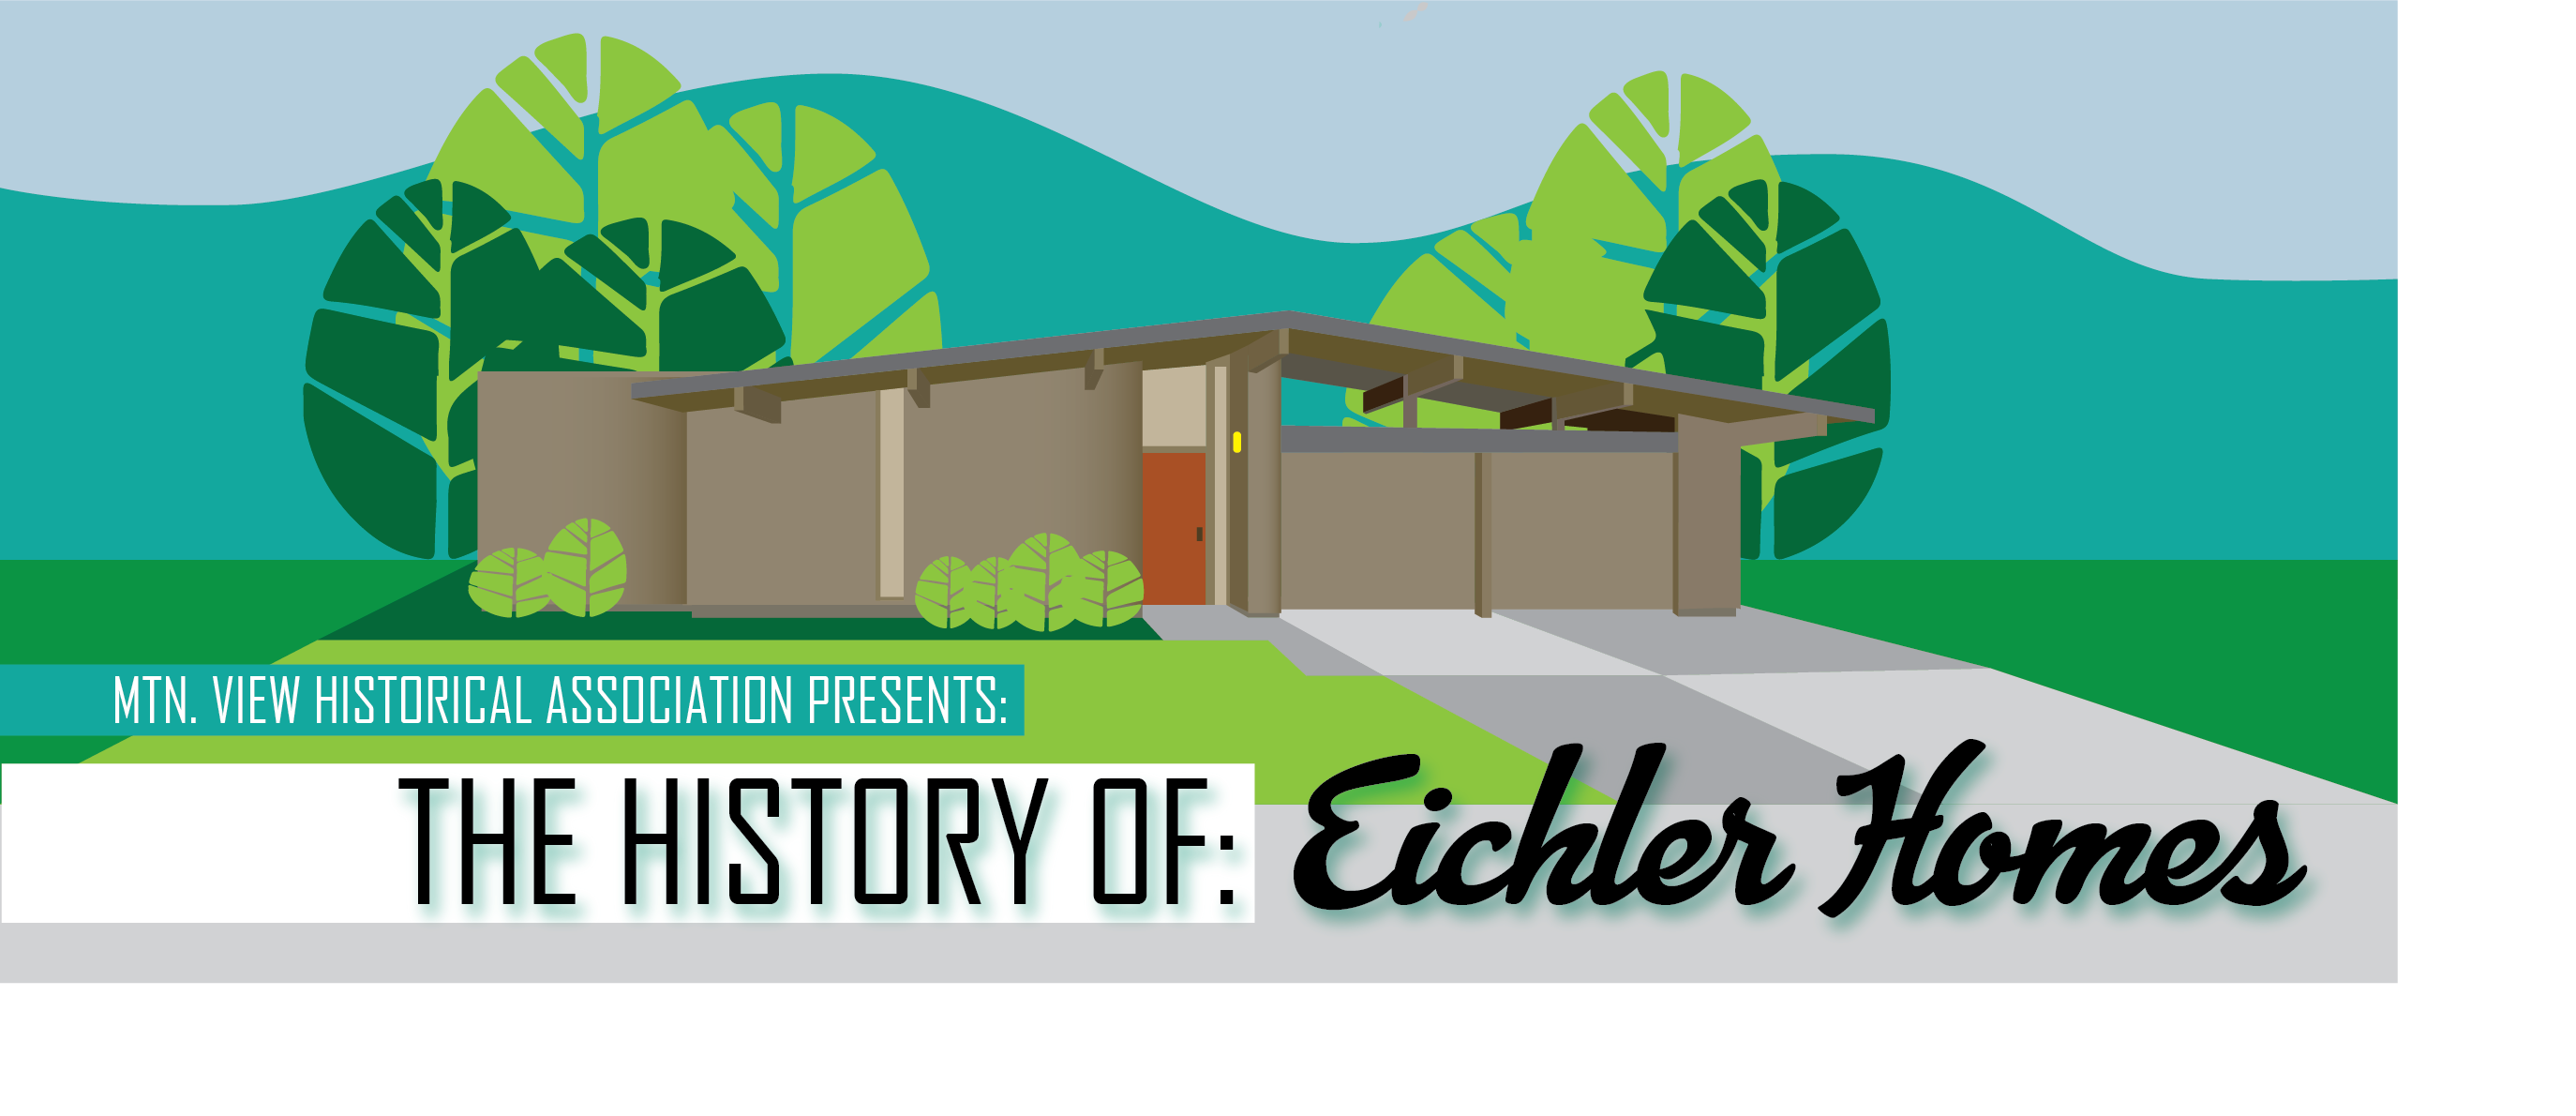 The History of Eichler Homes   Mountain View Historical Association 2748x1190